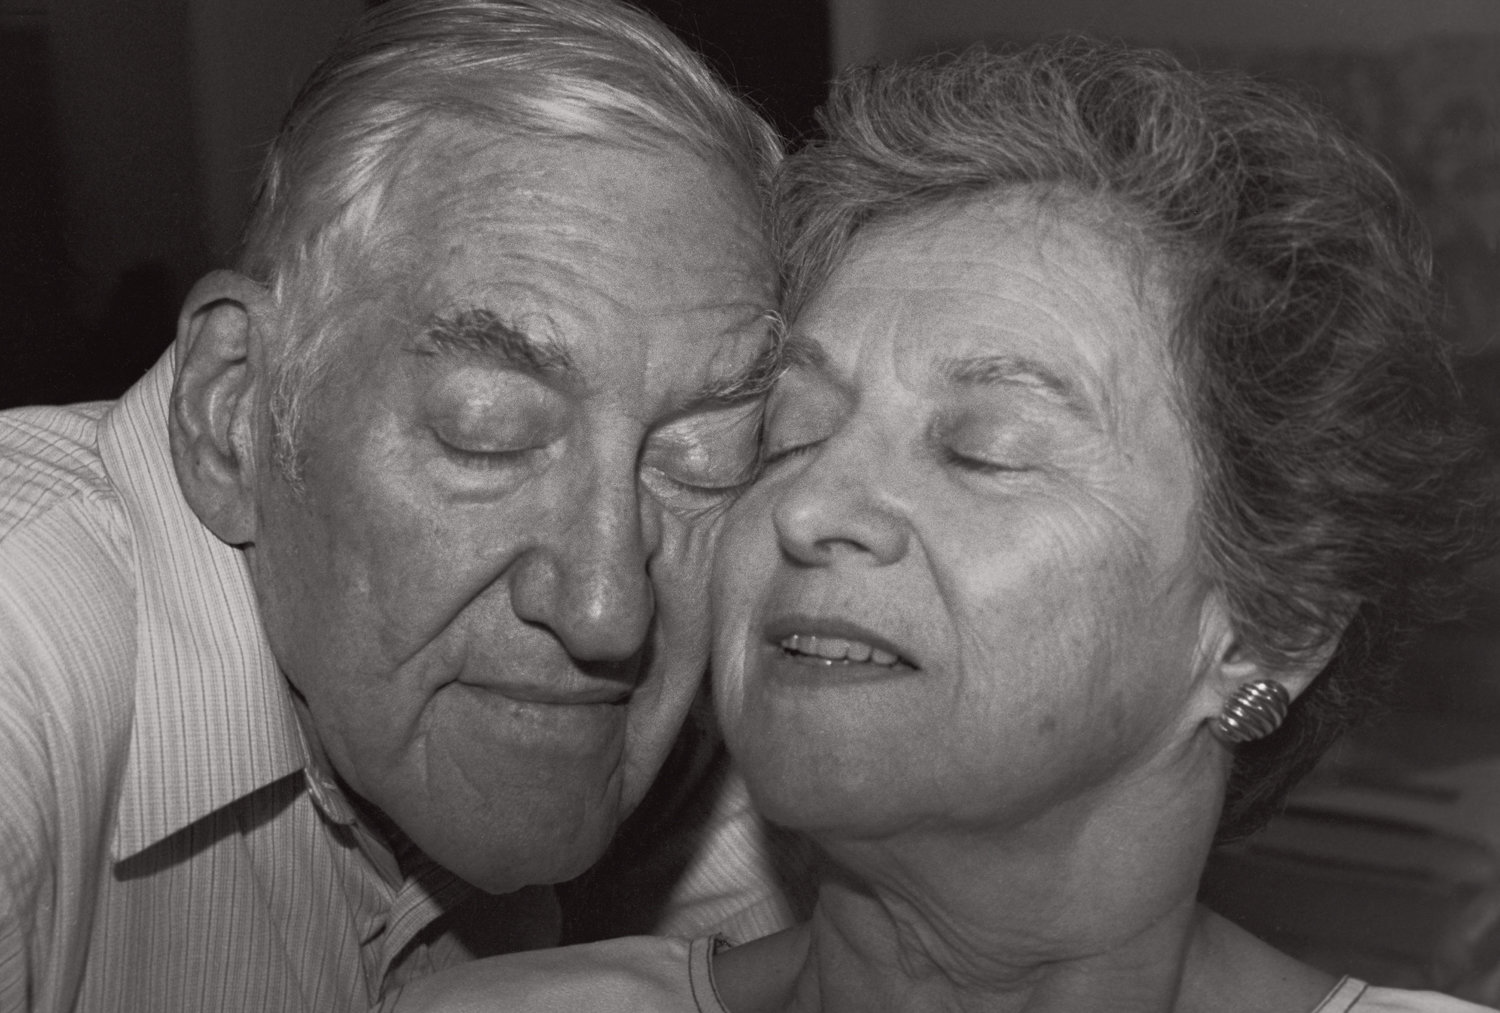 Robert Fass photographed Irwin and Evelyn for 'As Long As We Both Shall Live,' a portrait series of American couples who have been married 40 years. It's part of a display at The Riverdale Y's Gallery 18, originally scheduled to run through April, but currently closed because of the coronavirus crisis.